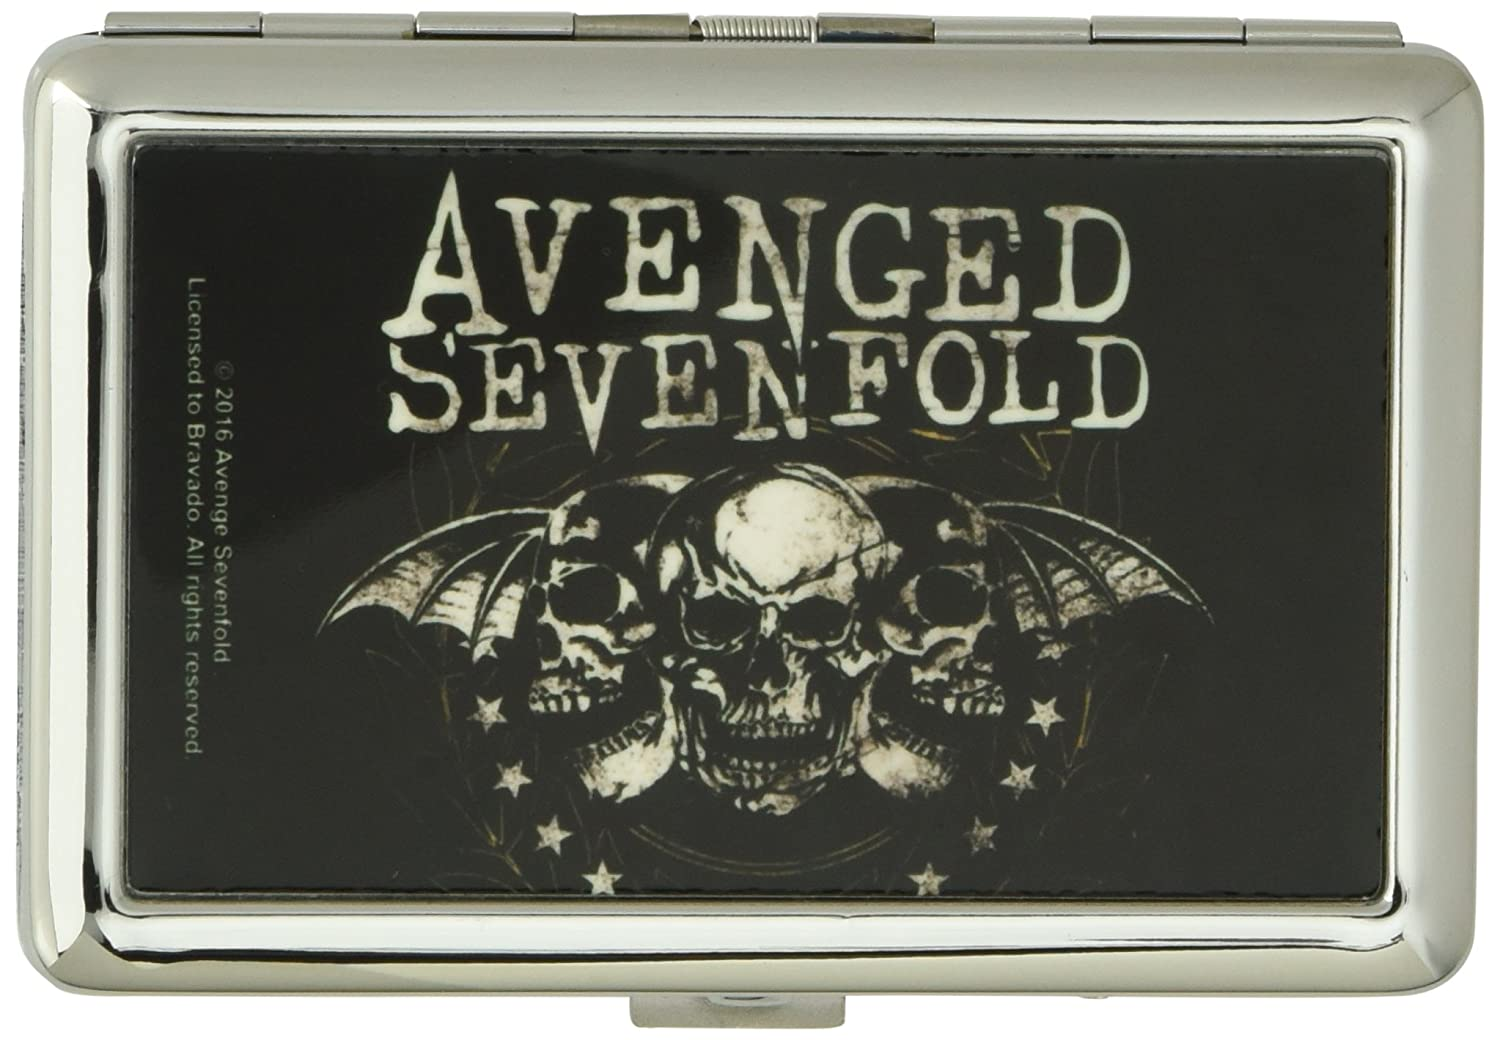 AVENGED SEVENFOLD Metal Multi-Use Wallet Business Card Holder - Triple Deathbat Crest Buckle-Down BCH-LG-ASFI